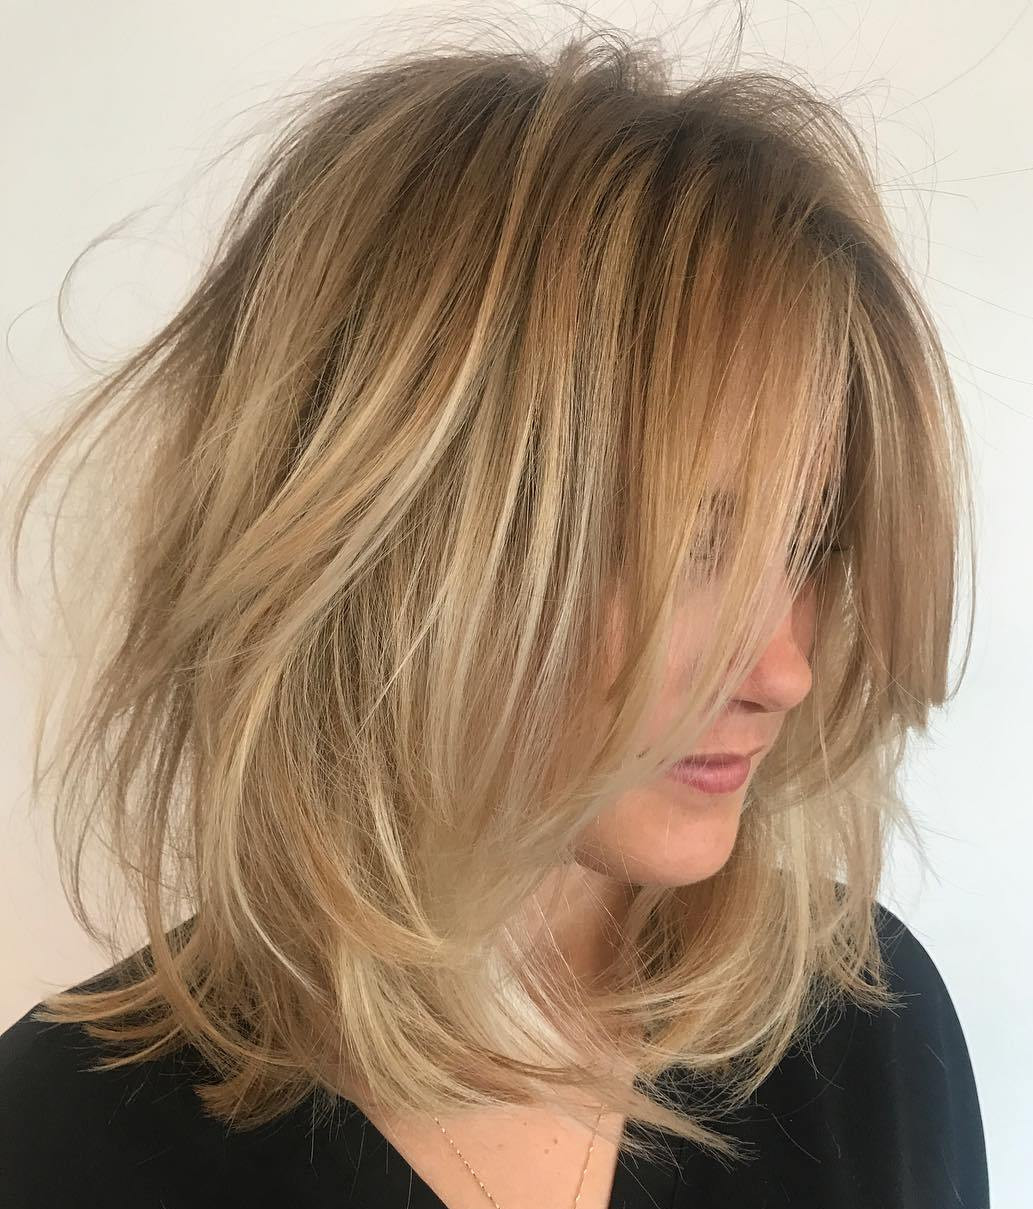 Best ideas about Hairstyle For Thinning Hair Female . Save or Pin 70 Devastatingly Cool Haircuts for Thin Hair Now.